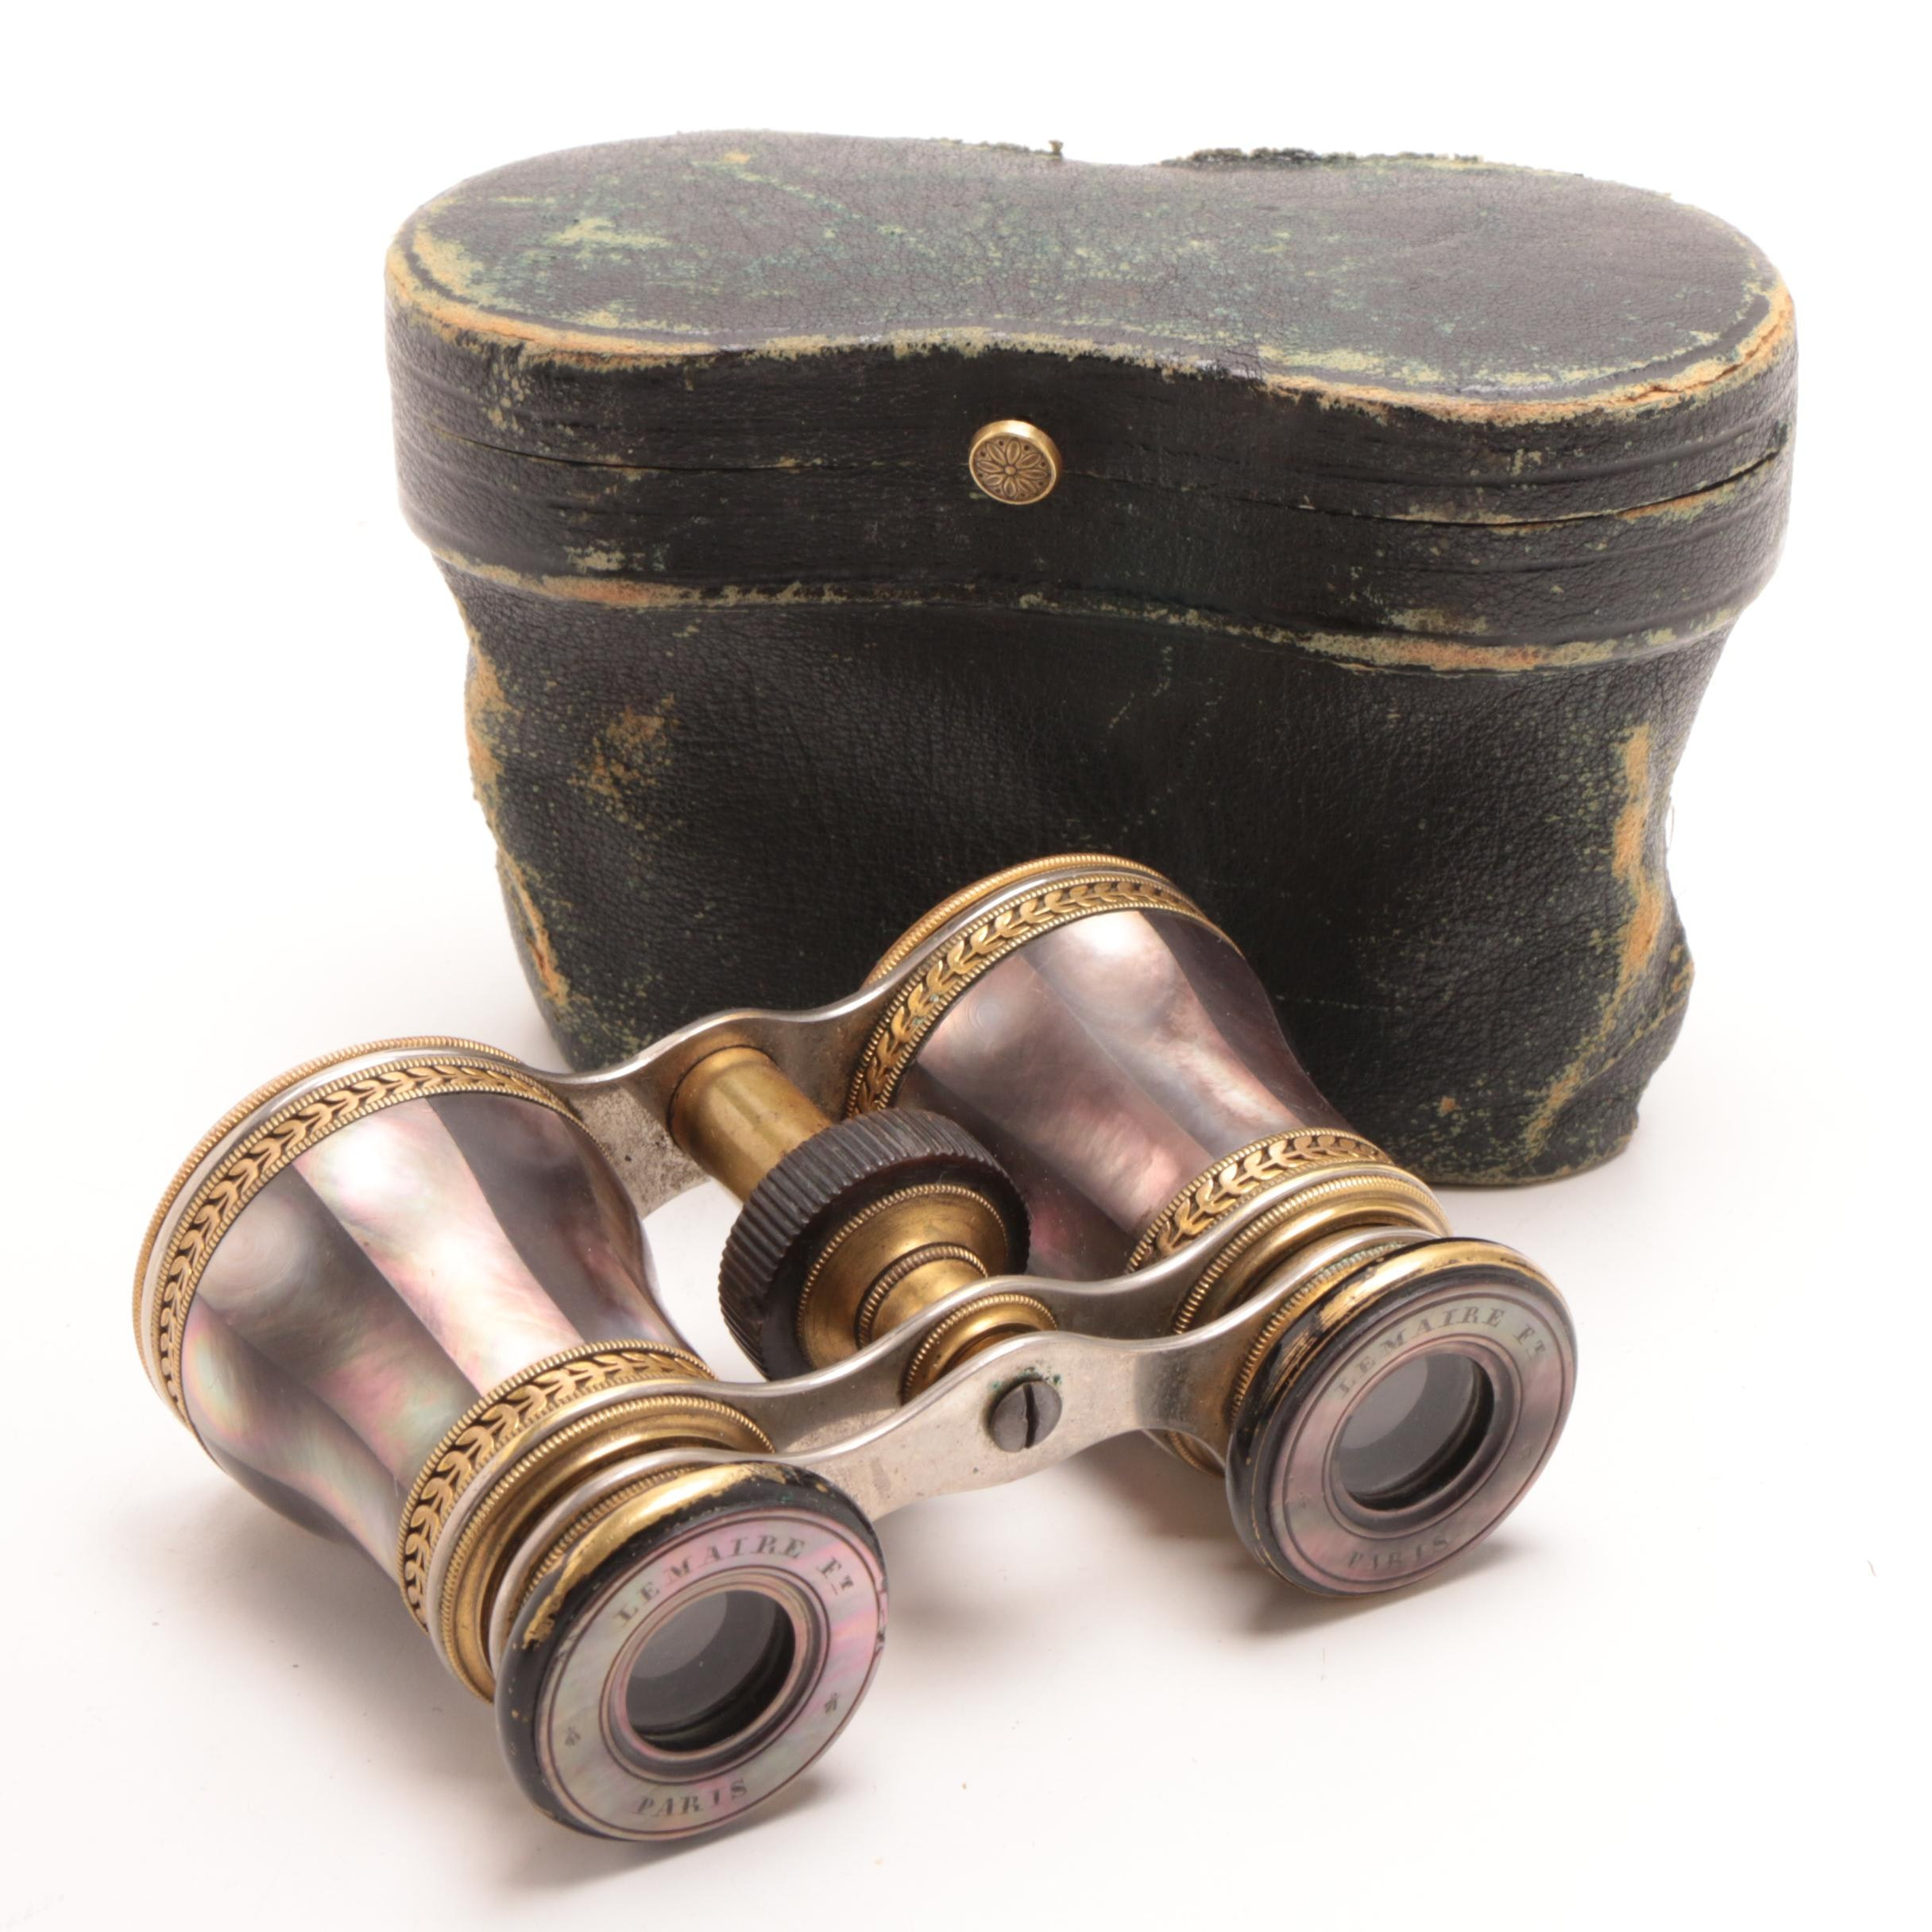 Lemaire Mother of Pearl Opera Glasses with Leather Case, Early 20th Century